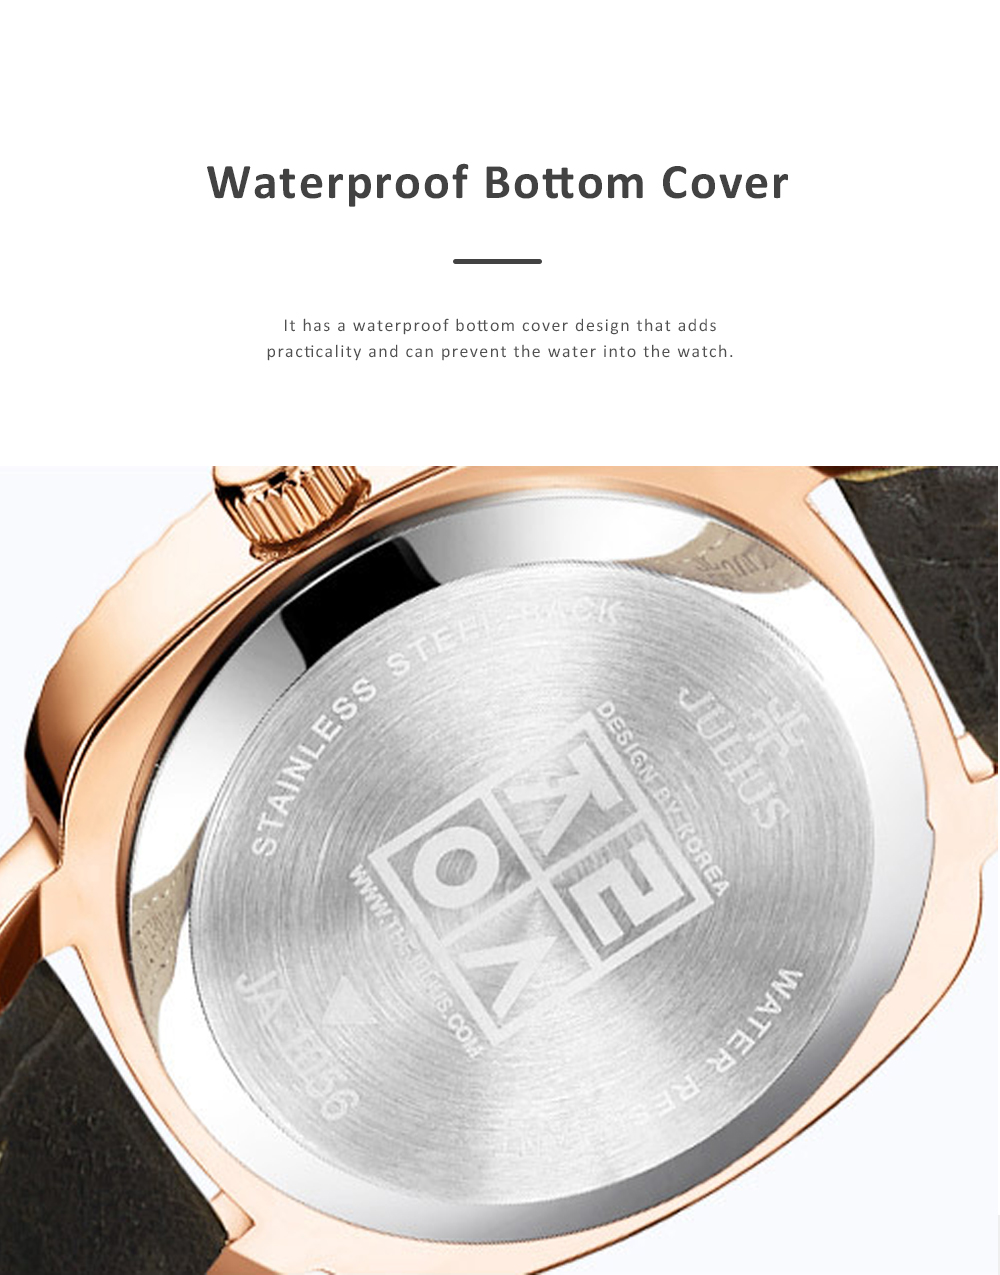 Glitter Dial Watch for Women Waterproof Bottom Cover Ultrafine Leather Strap Quartz watch 3